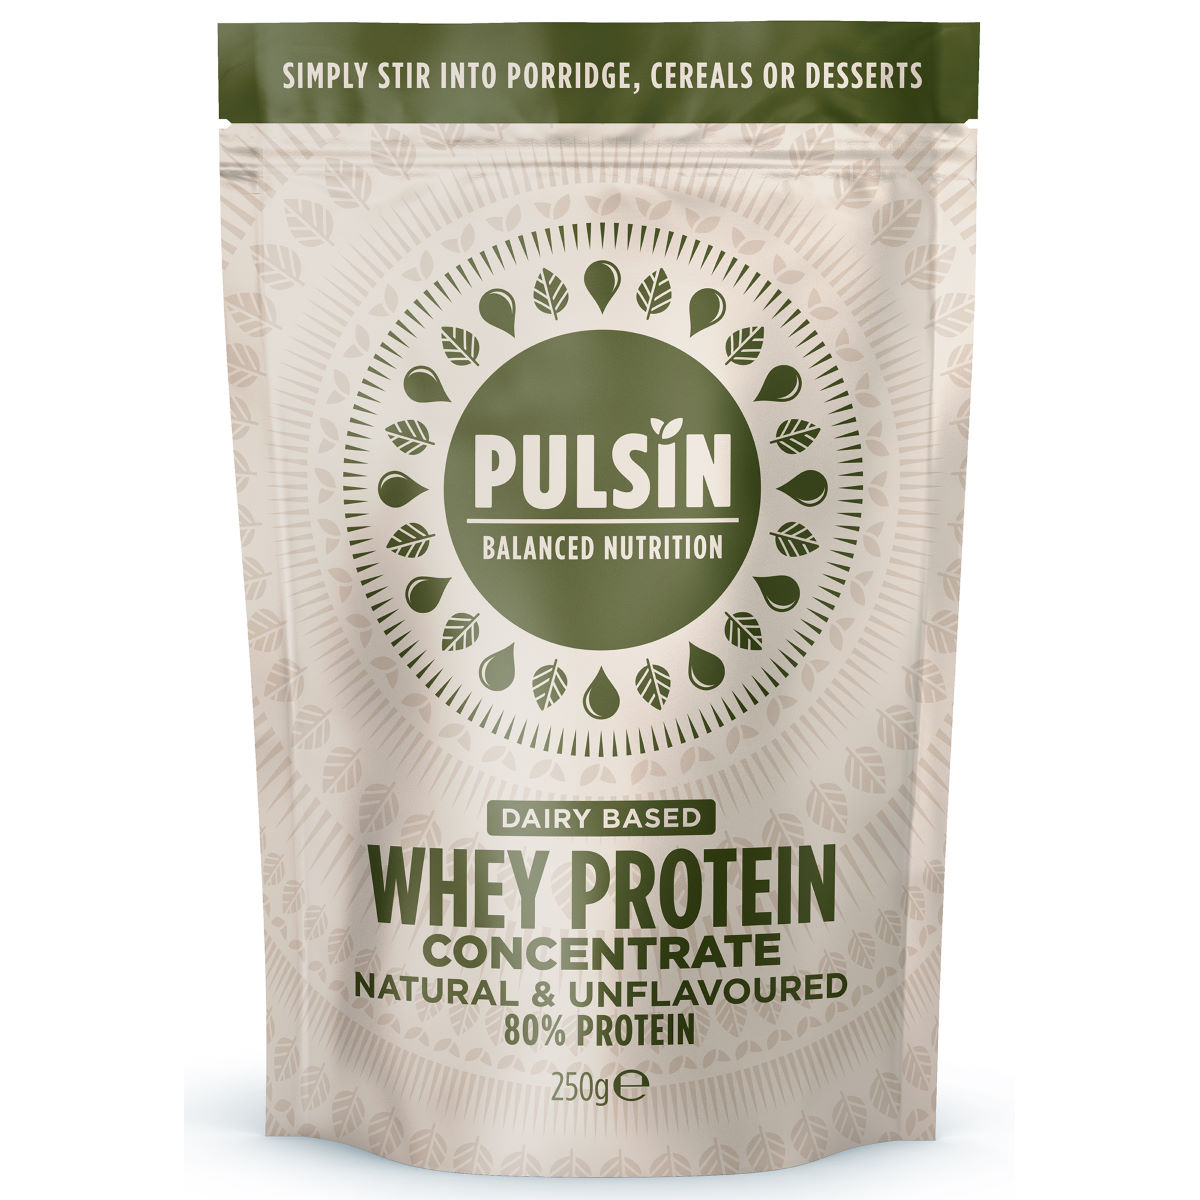 Pulsin Simply Whey Protein Powder (250g) - 250g Natural  Whey Protein